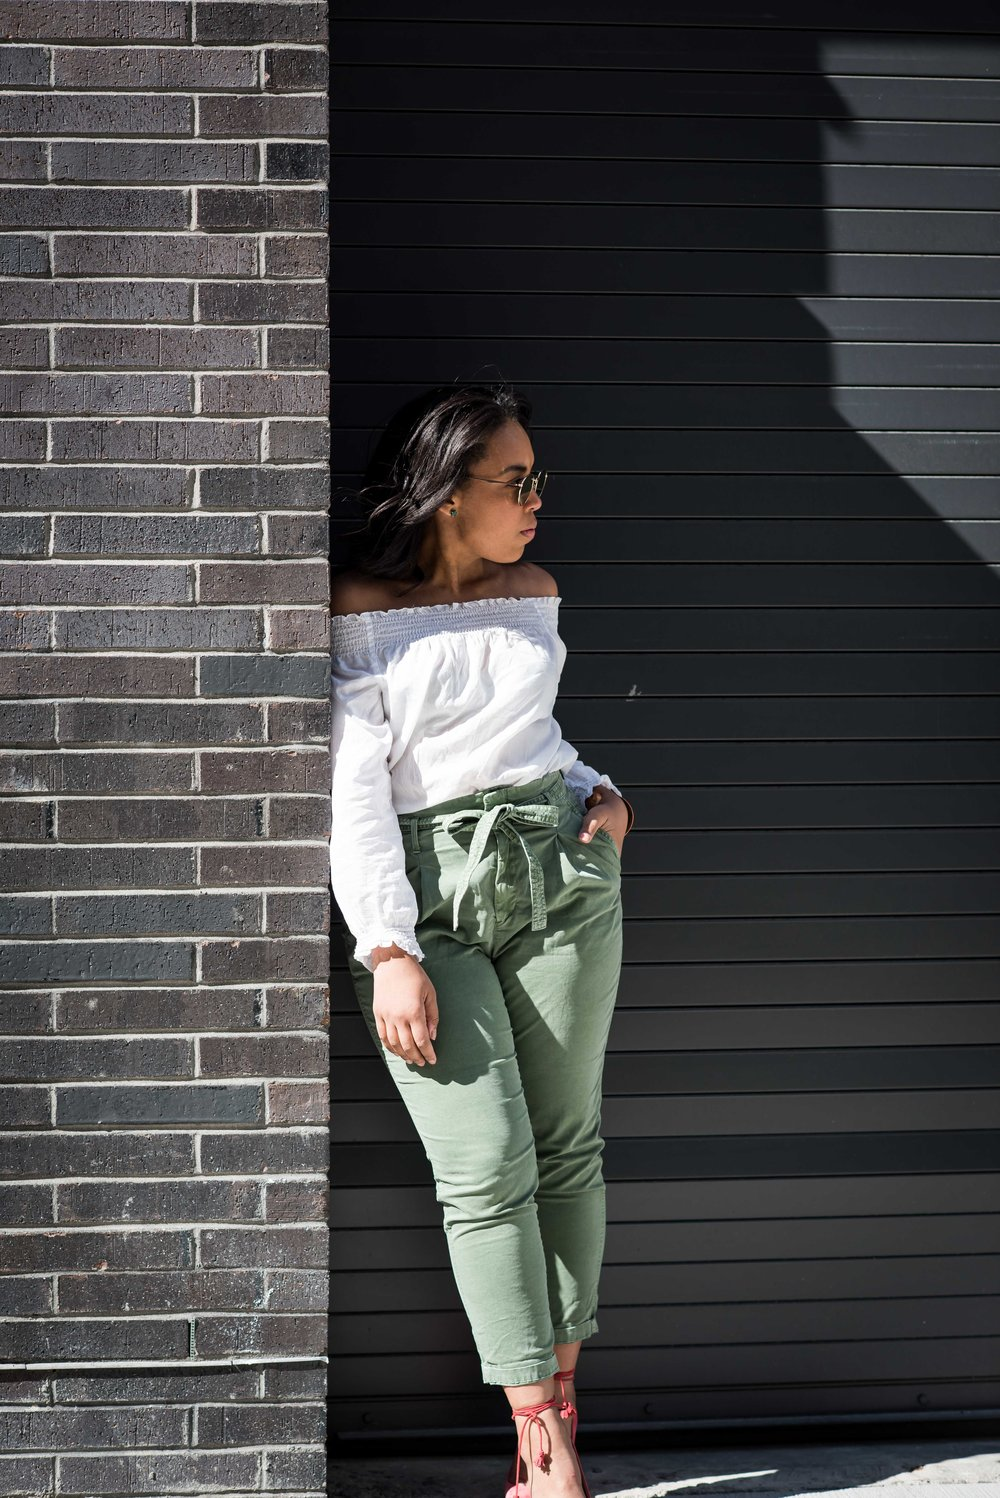 gap-paper-bag-waist-chinos-off-the-shoulder-blouse-jcrew-tassle-pumps-round-sunglasses-urban-outfitters-spring-fashion-4.JPG